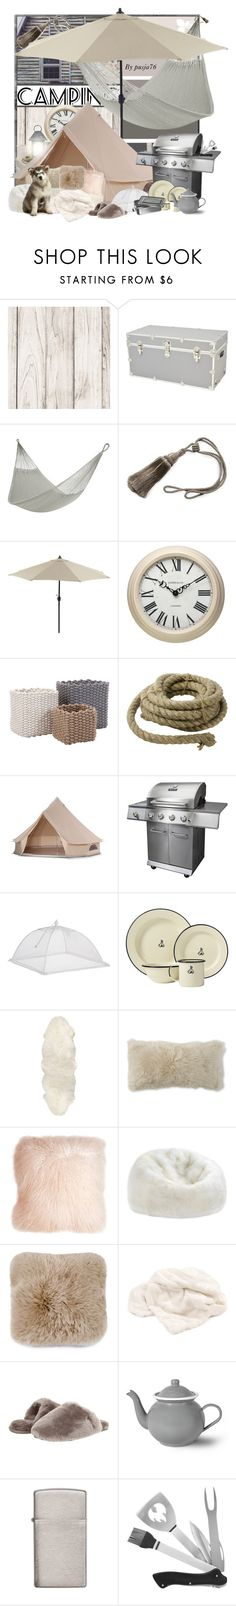 """Luxury camping in Denmark"" by pusja76 ❤ liked on Polyvore featuring interior, interiors, interior design, home, home decor, interior decorating, Yellow Leaf Hammocks, Croscill, Pier 1 Imports and HomArt"